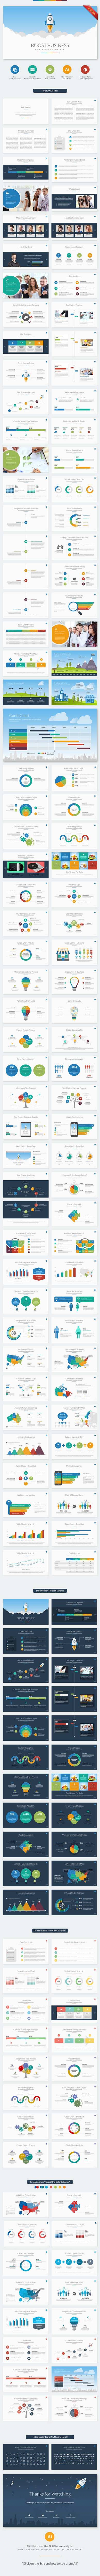 Boost Business PowerPoint Template, Business Startup, Proposal, Creative, Unique, Infographic, Jet, Start, Business, Boost Business, Inspirational, Corporate, Inspiration, Infographic, Rocket, Space